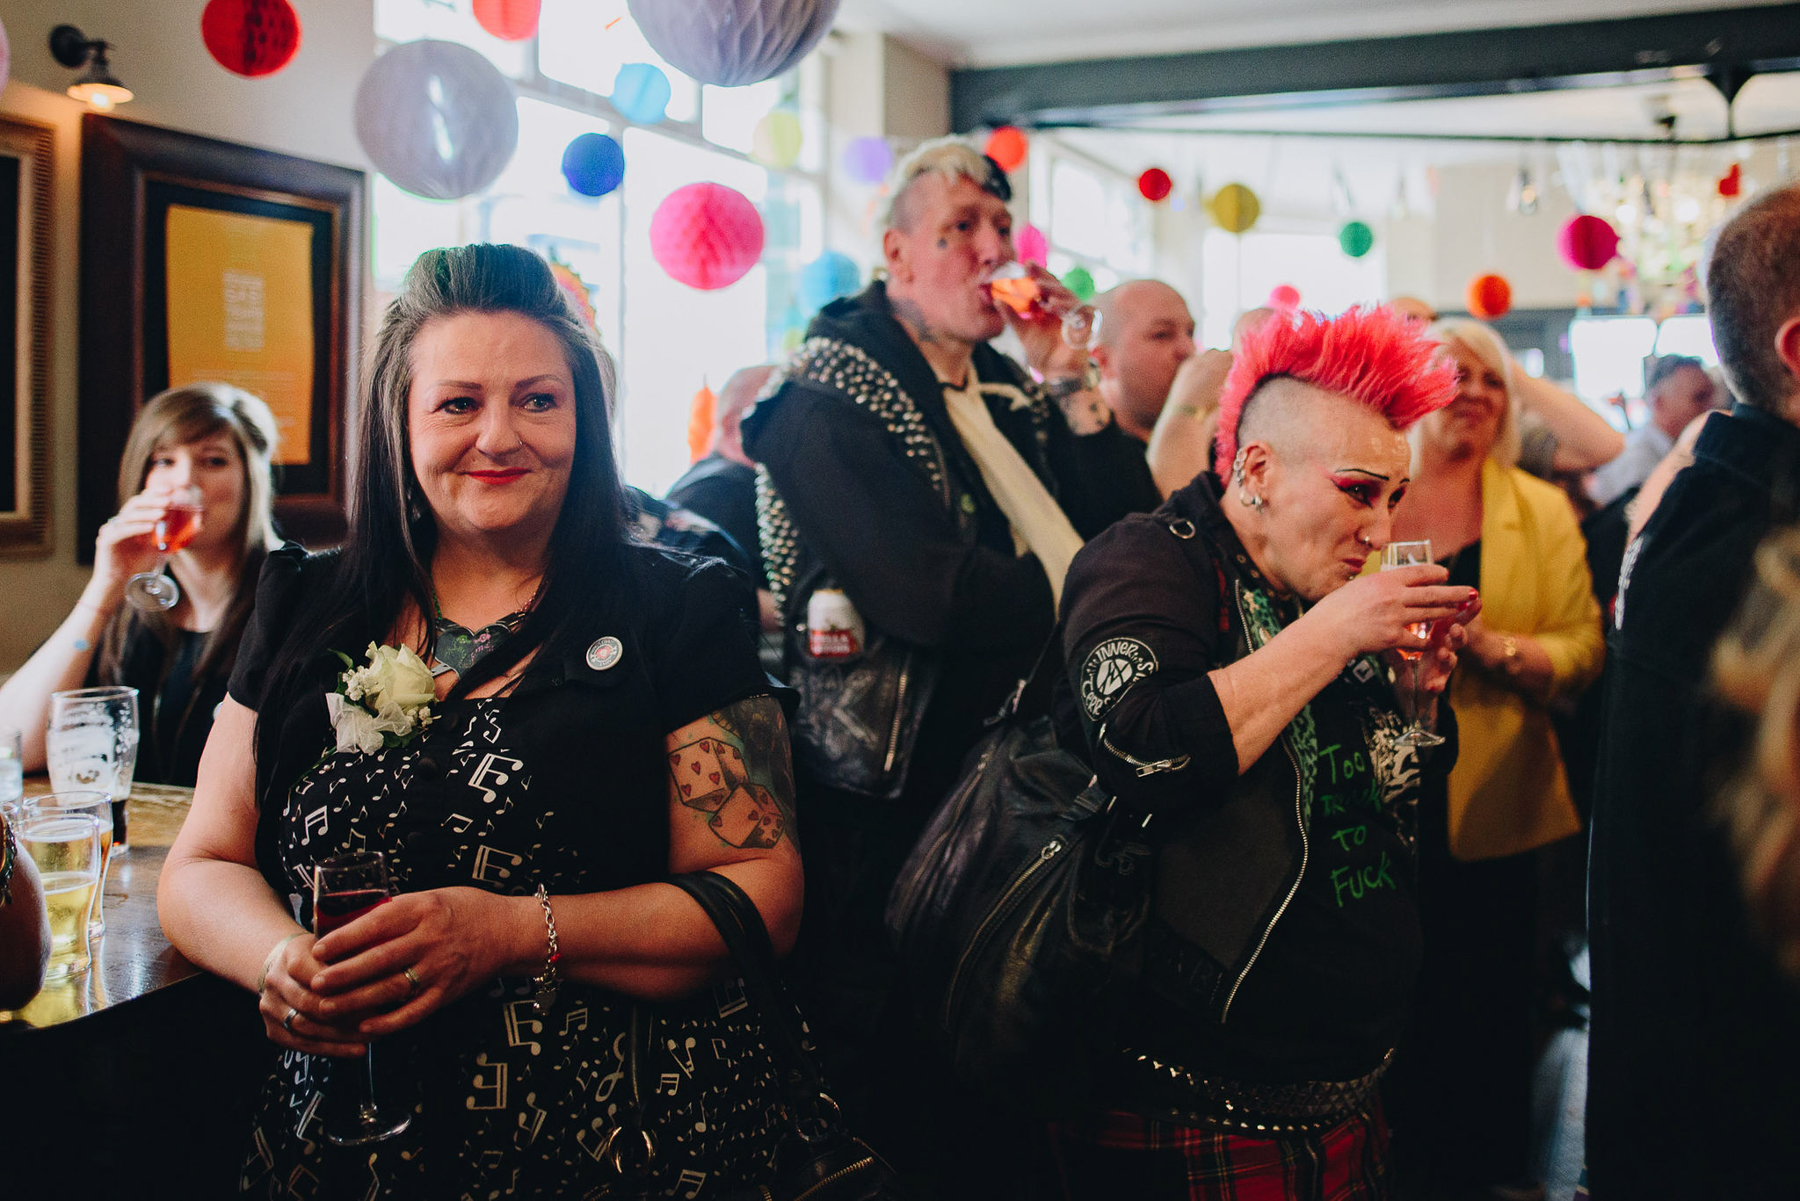 Alternative_Manchester_Northern_Quarter_Wedding_Photography_The_Pin-Up_Bride-48.jpg